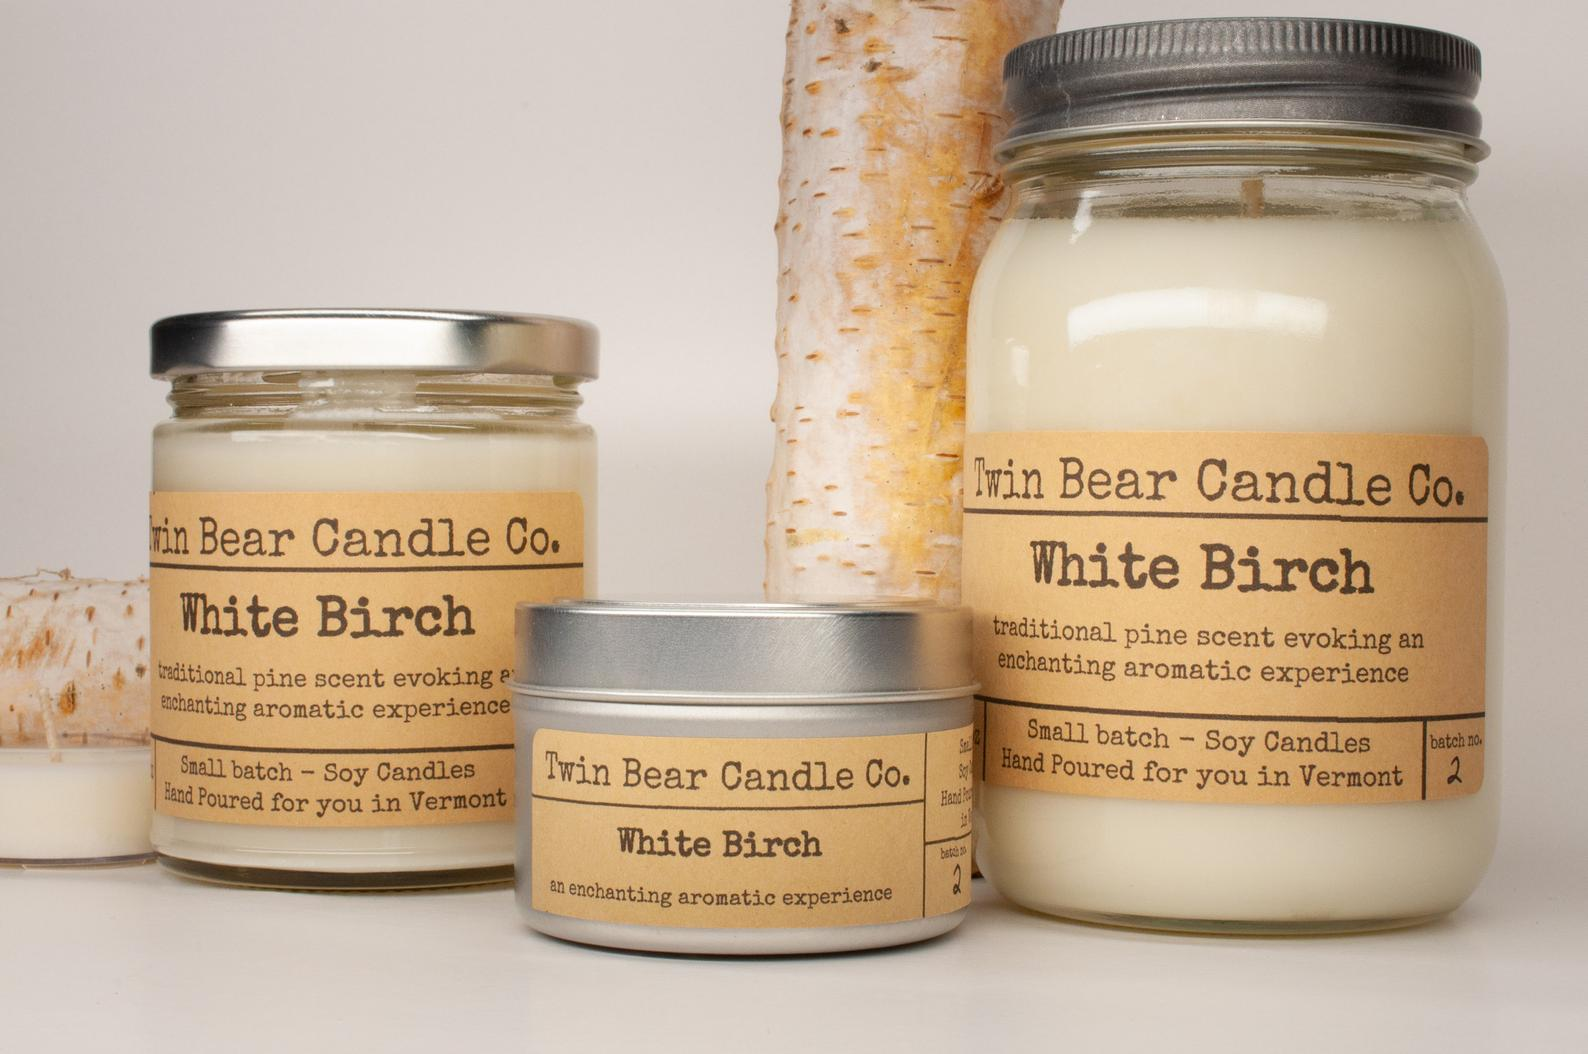 Twin Bear Candle Co.